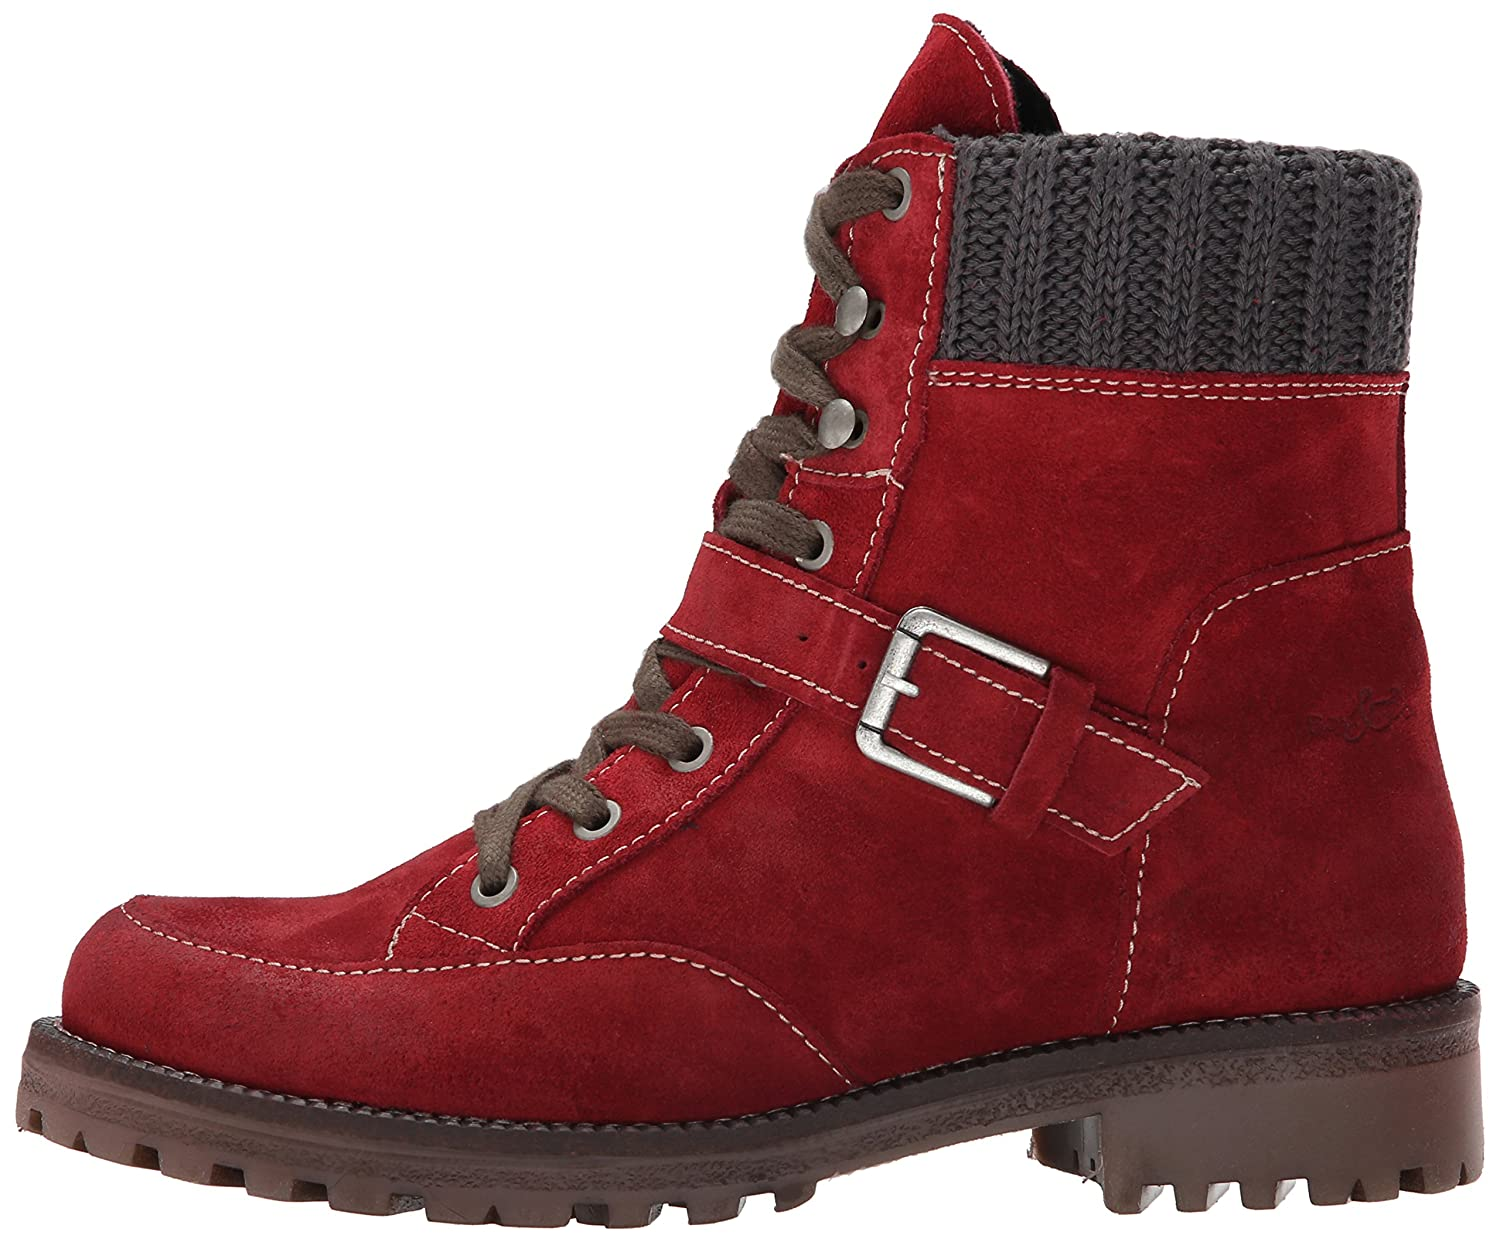 Bos. & Co. Women's Colony Boot B00VTCRIRG 38 EU/7.5-8 M US|Red/Grey